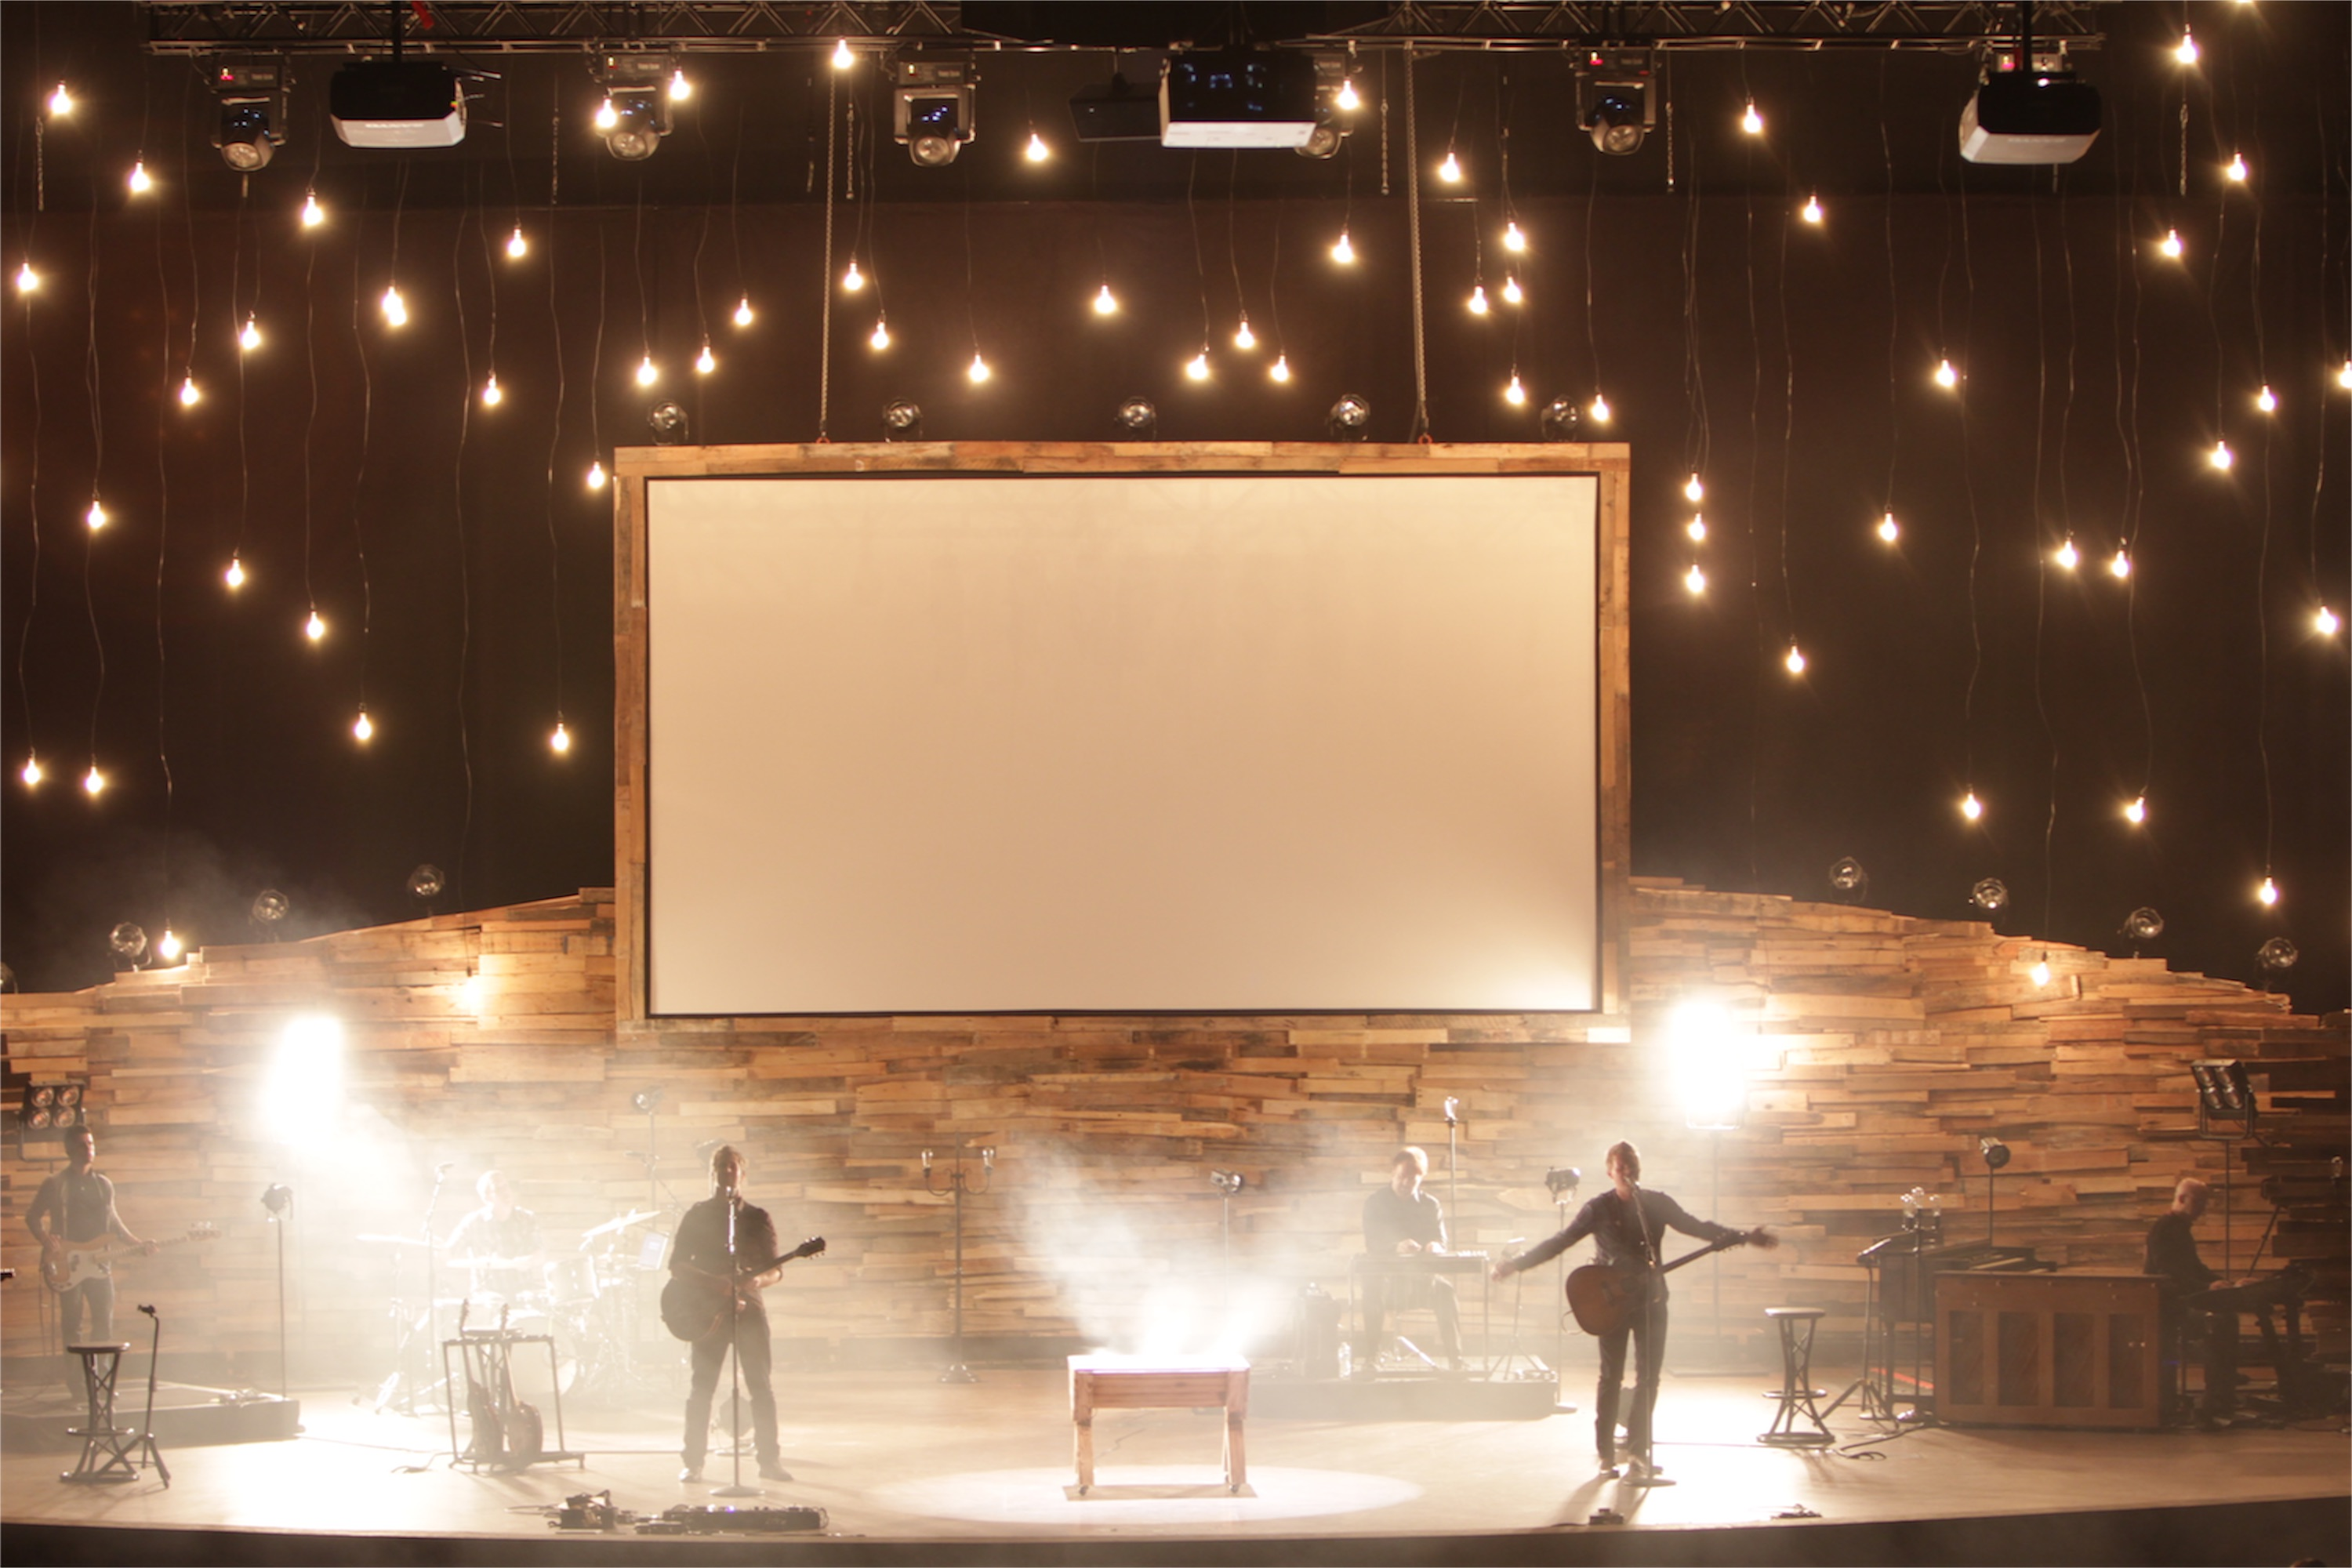 17 best ideas about stage backdrops on pinterest youth room church karaoke and youth group rooms - Church Website Design Ideas